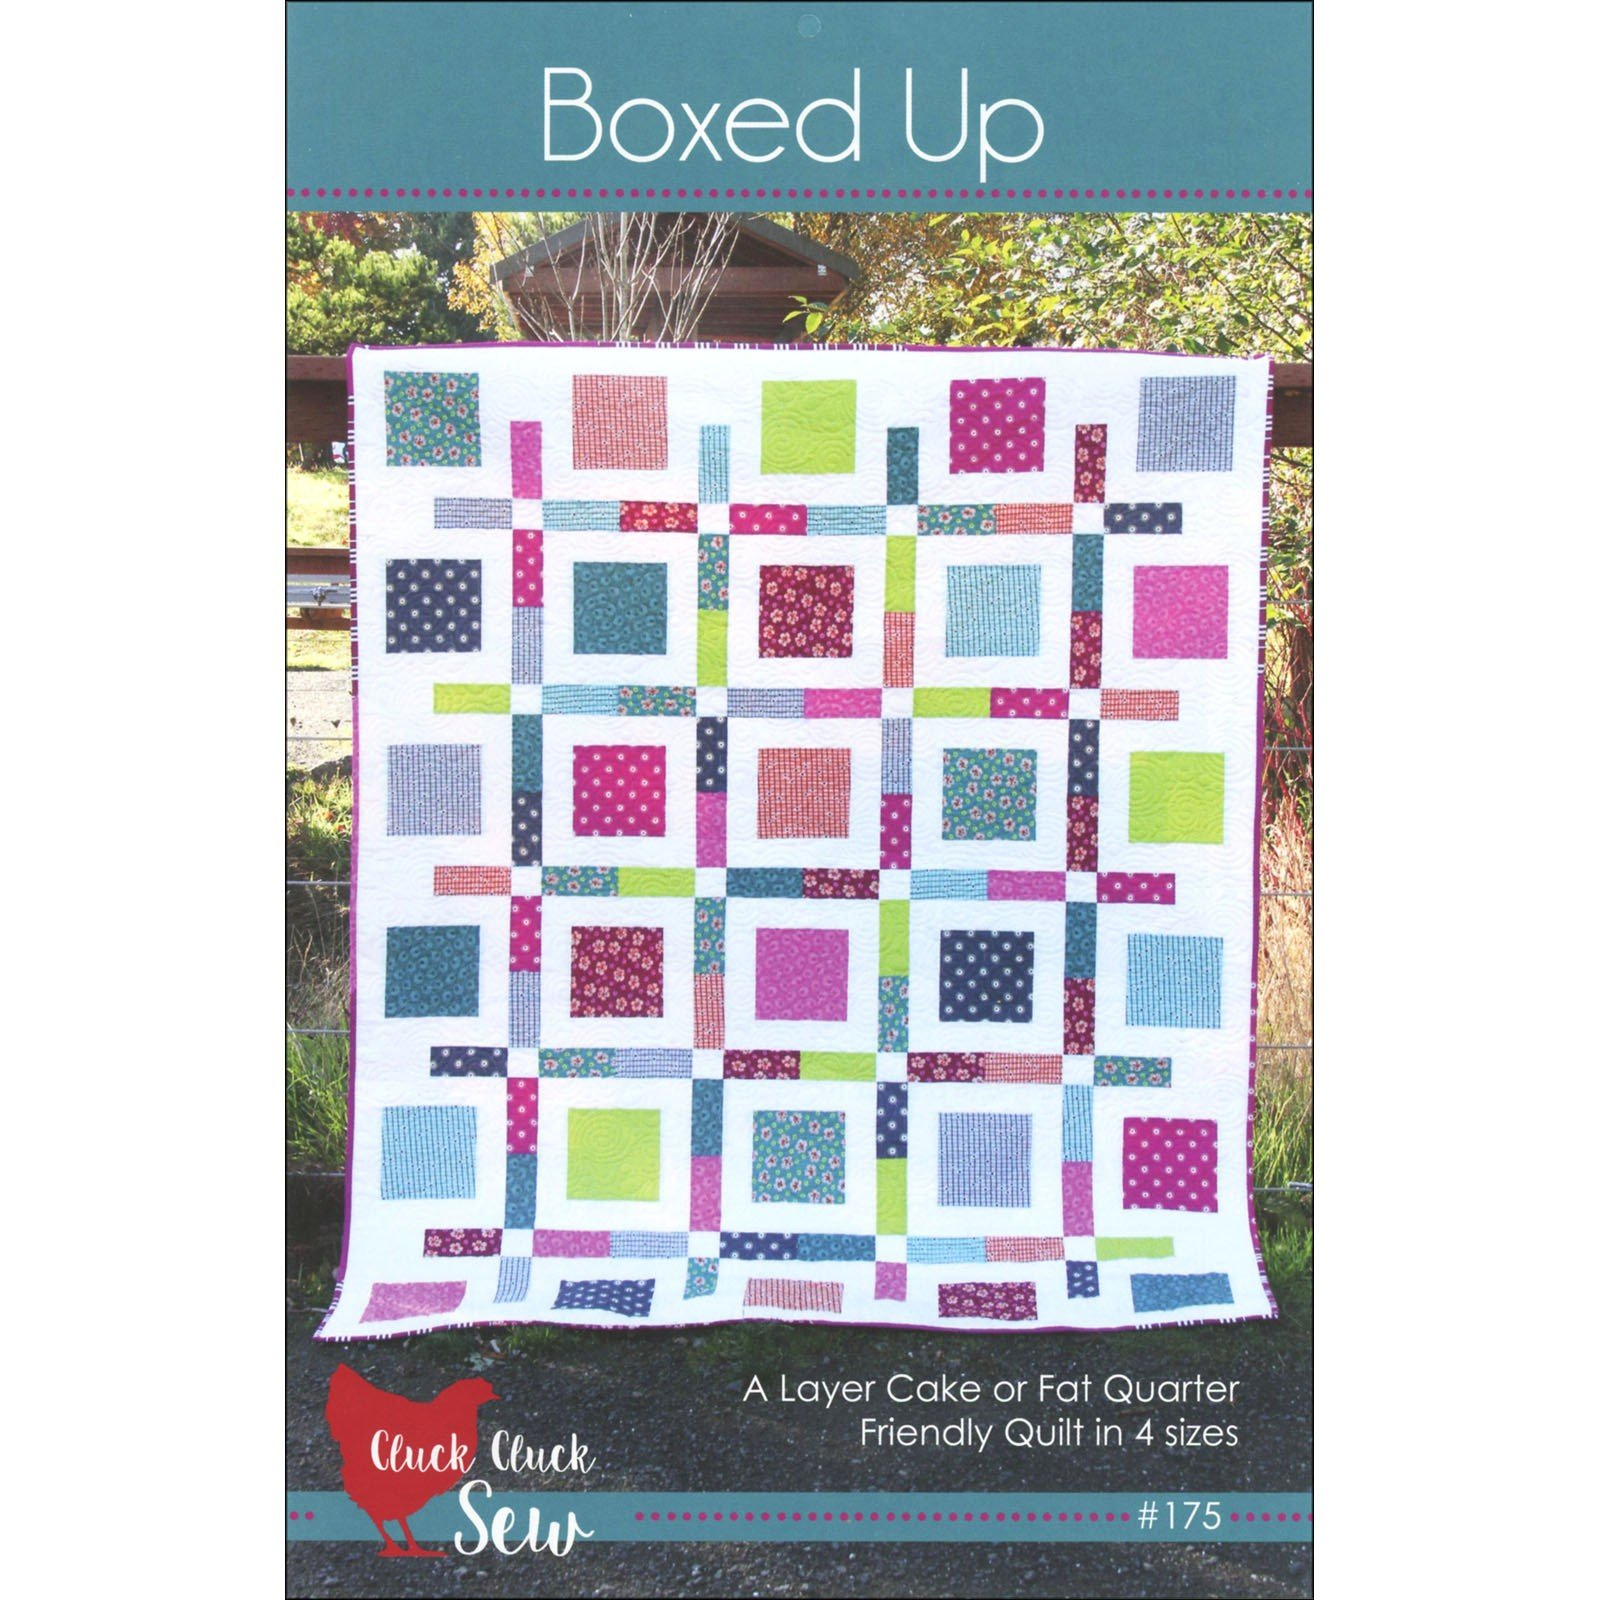 all boxed up quilt